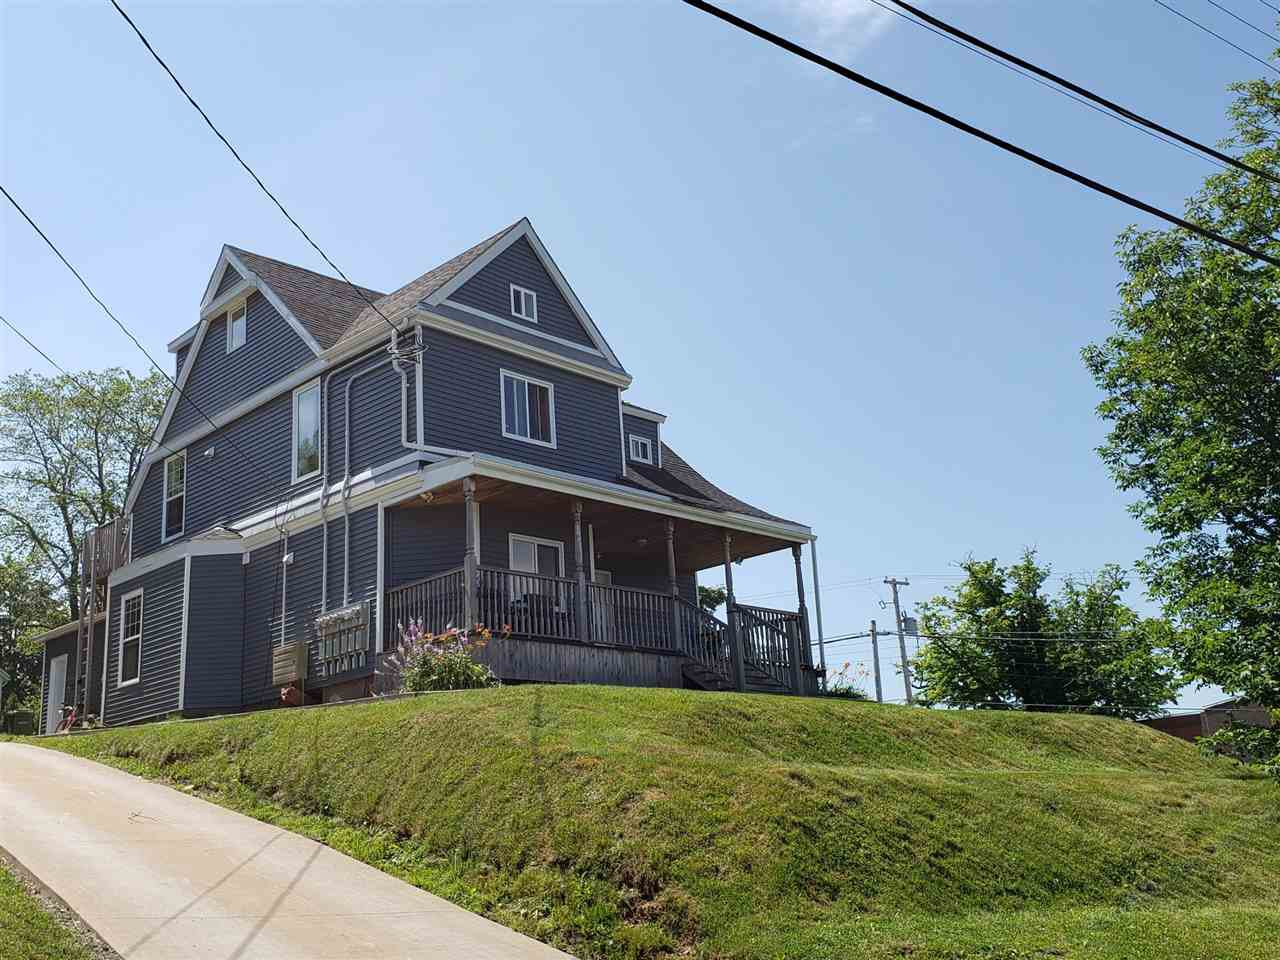 Main Photo: 29 Prospect Street in Wolfville: 404-Kings County Multi-Family for sale (Annapolis Valley)  : MLS®# 202014423